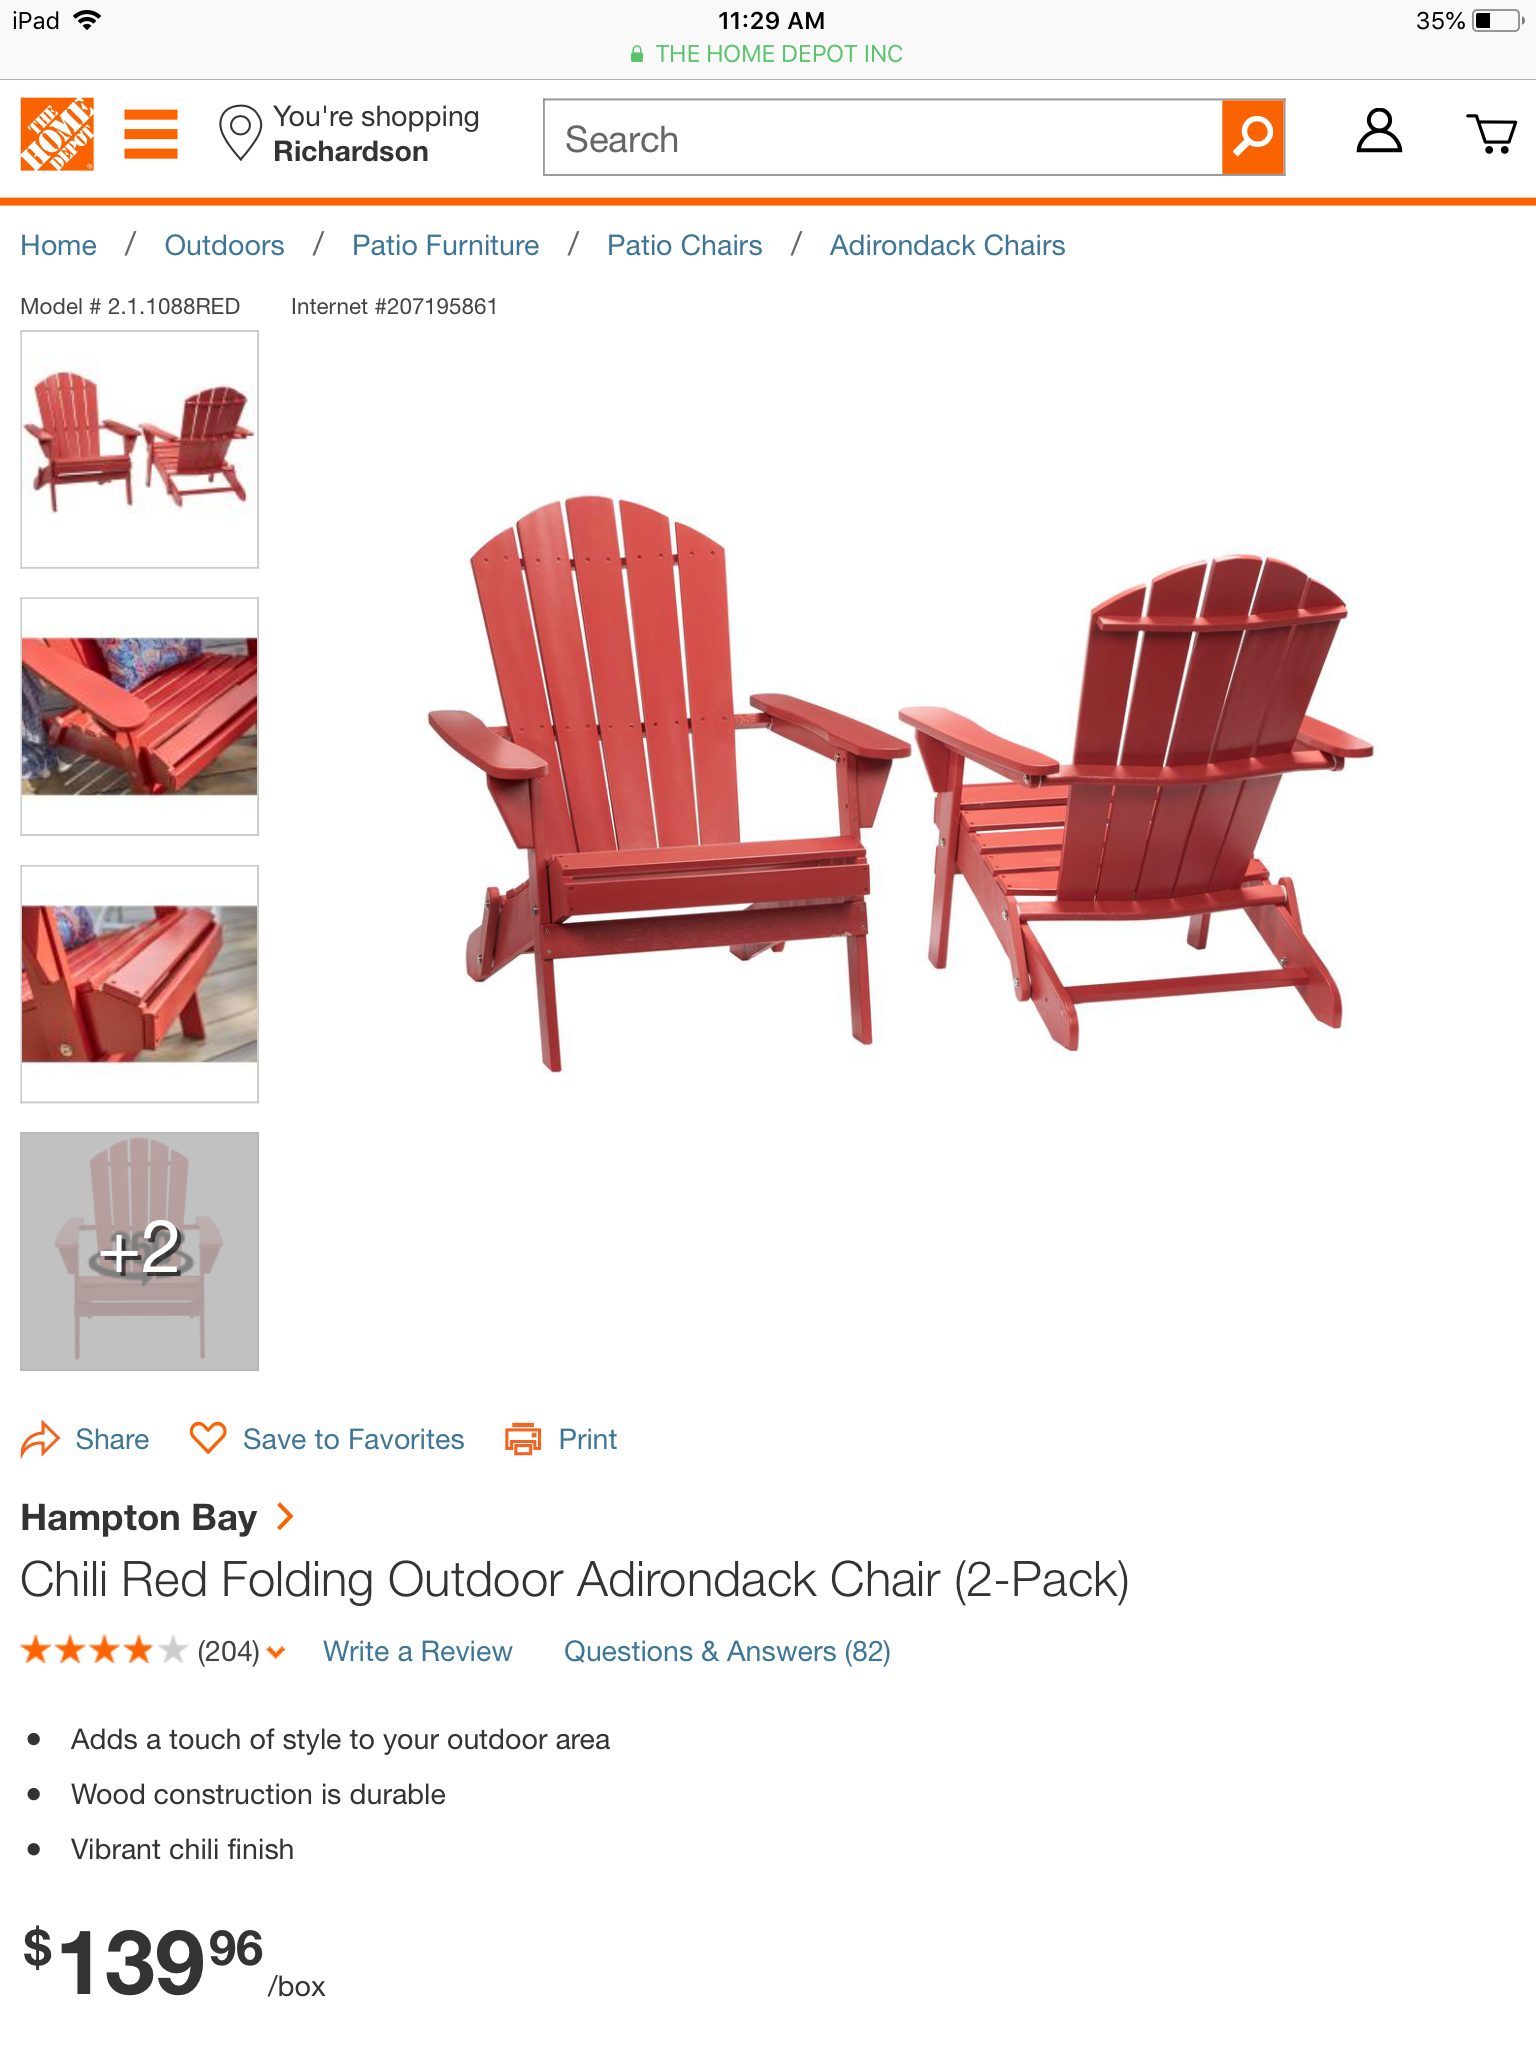 Cool Hampton Bay Chili Red Folding Outdoor Adirondack Chair 2 Gmtry Best Dining Table And Chair Ideas Images Gmtryco